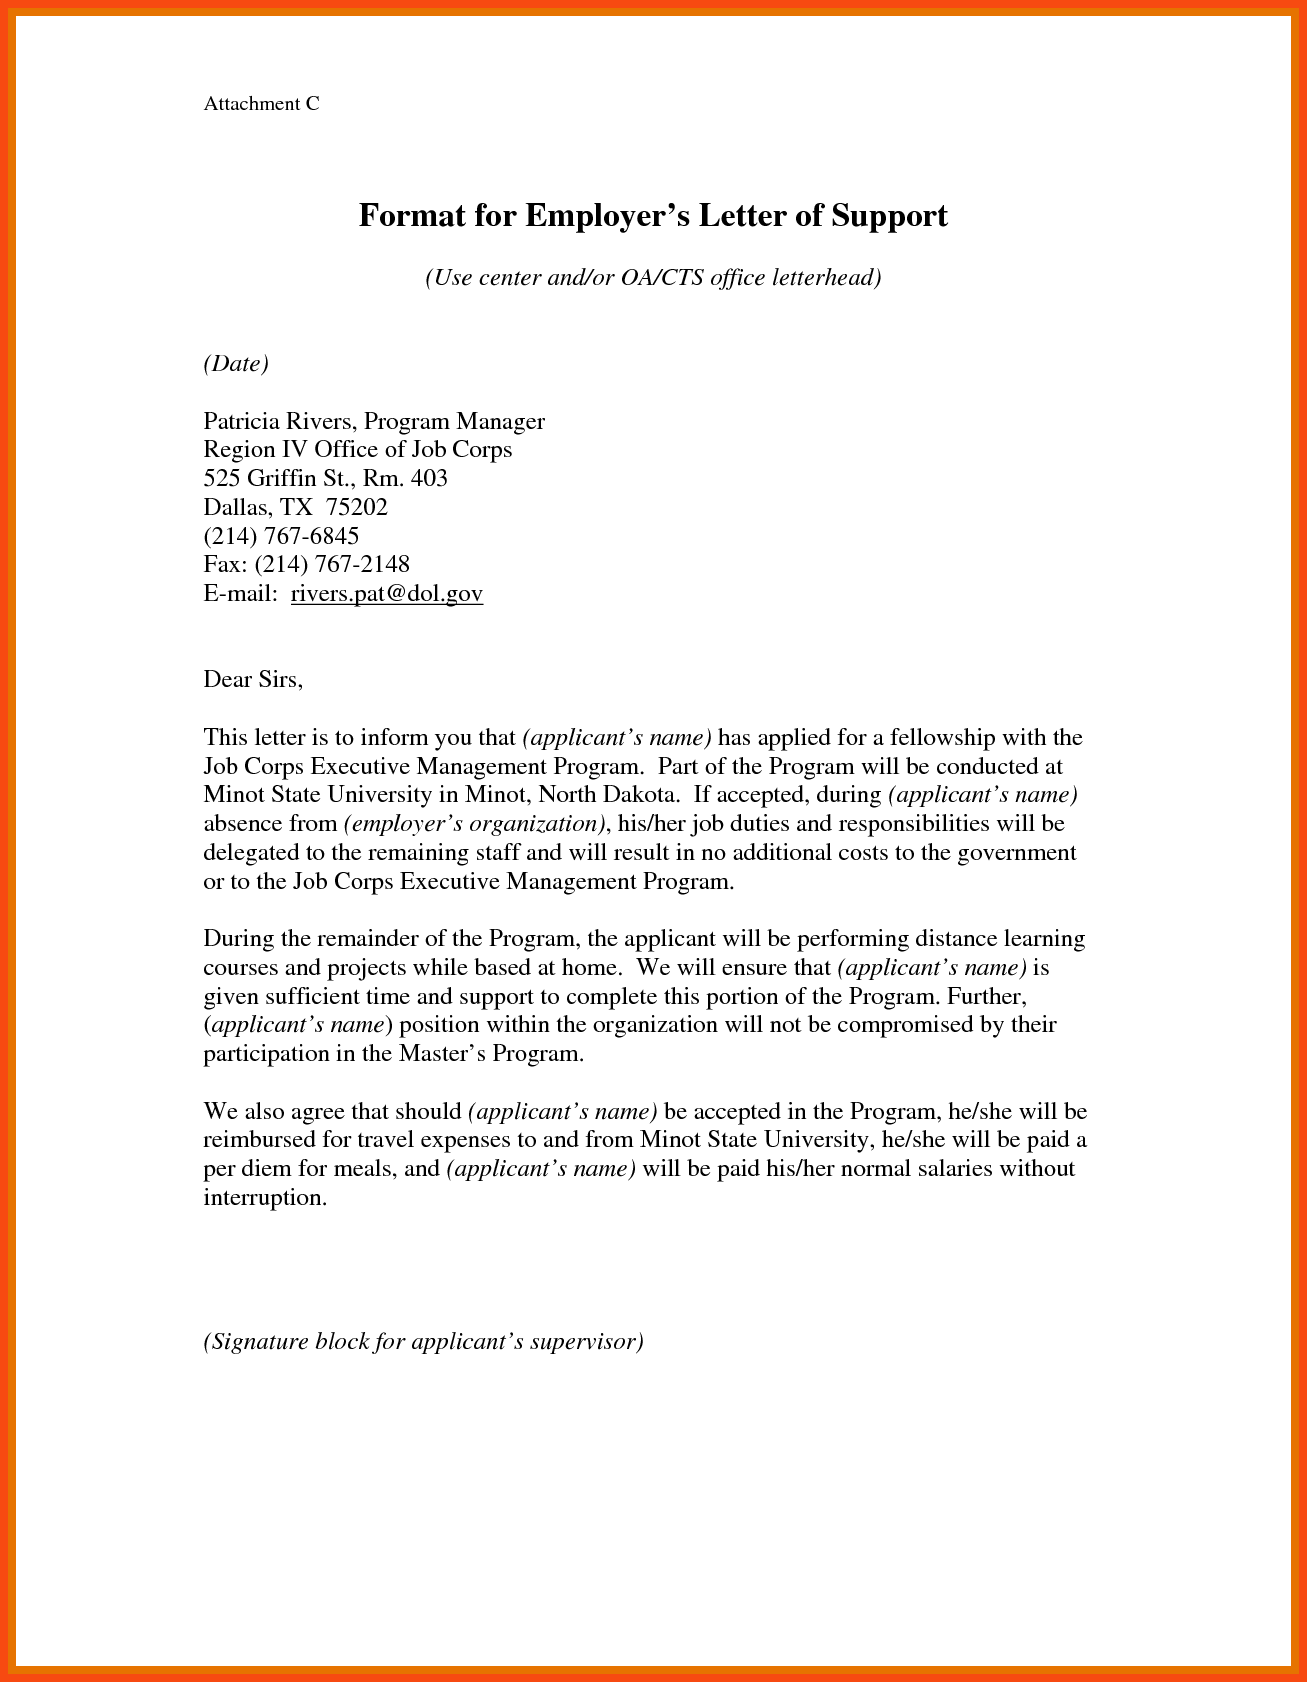 Business Letter Format Attachment Program Example  Home Design